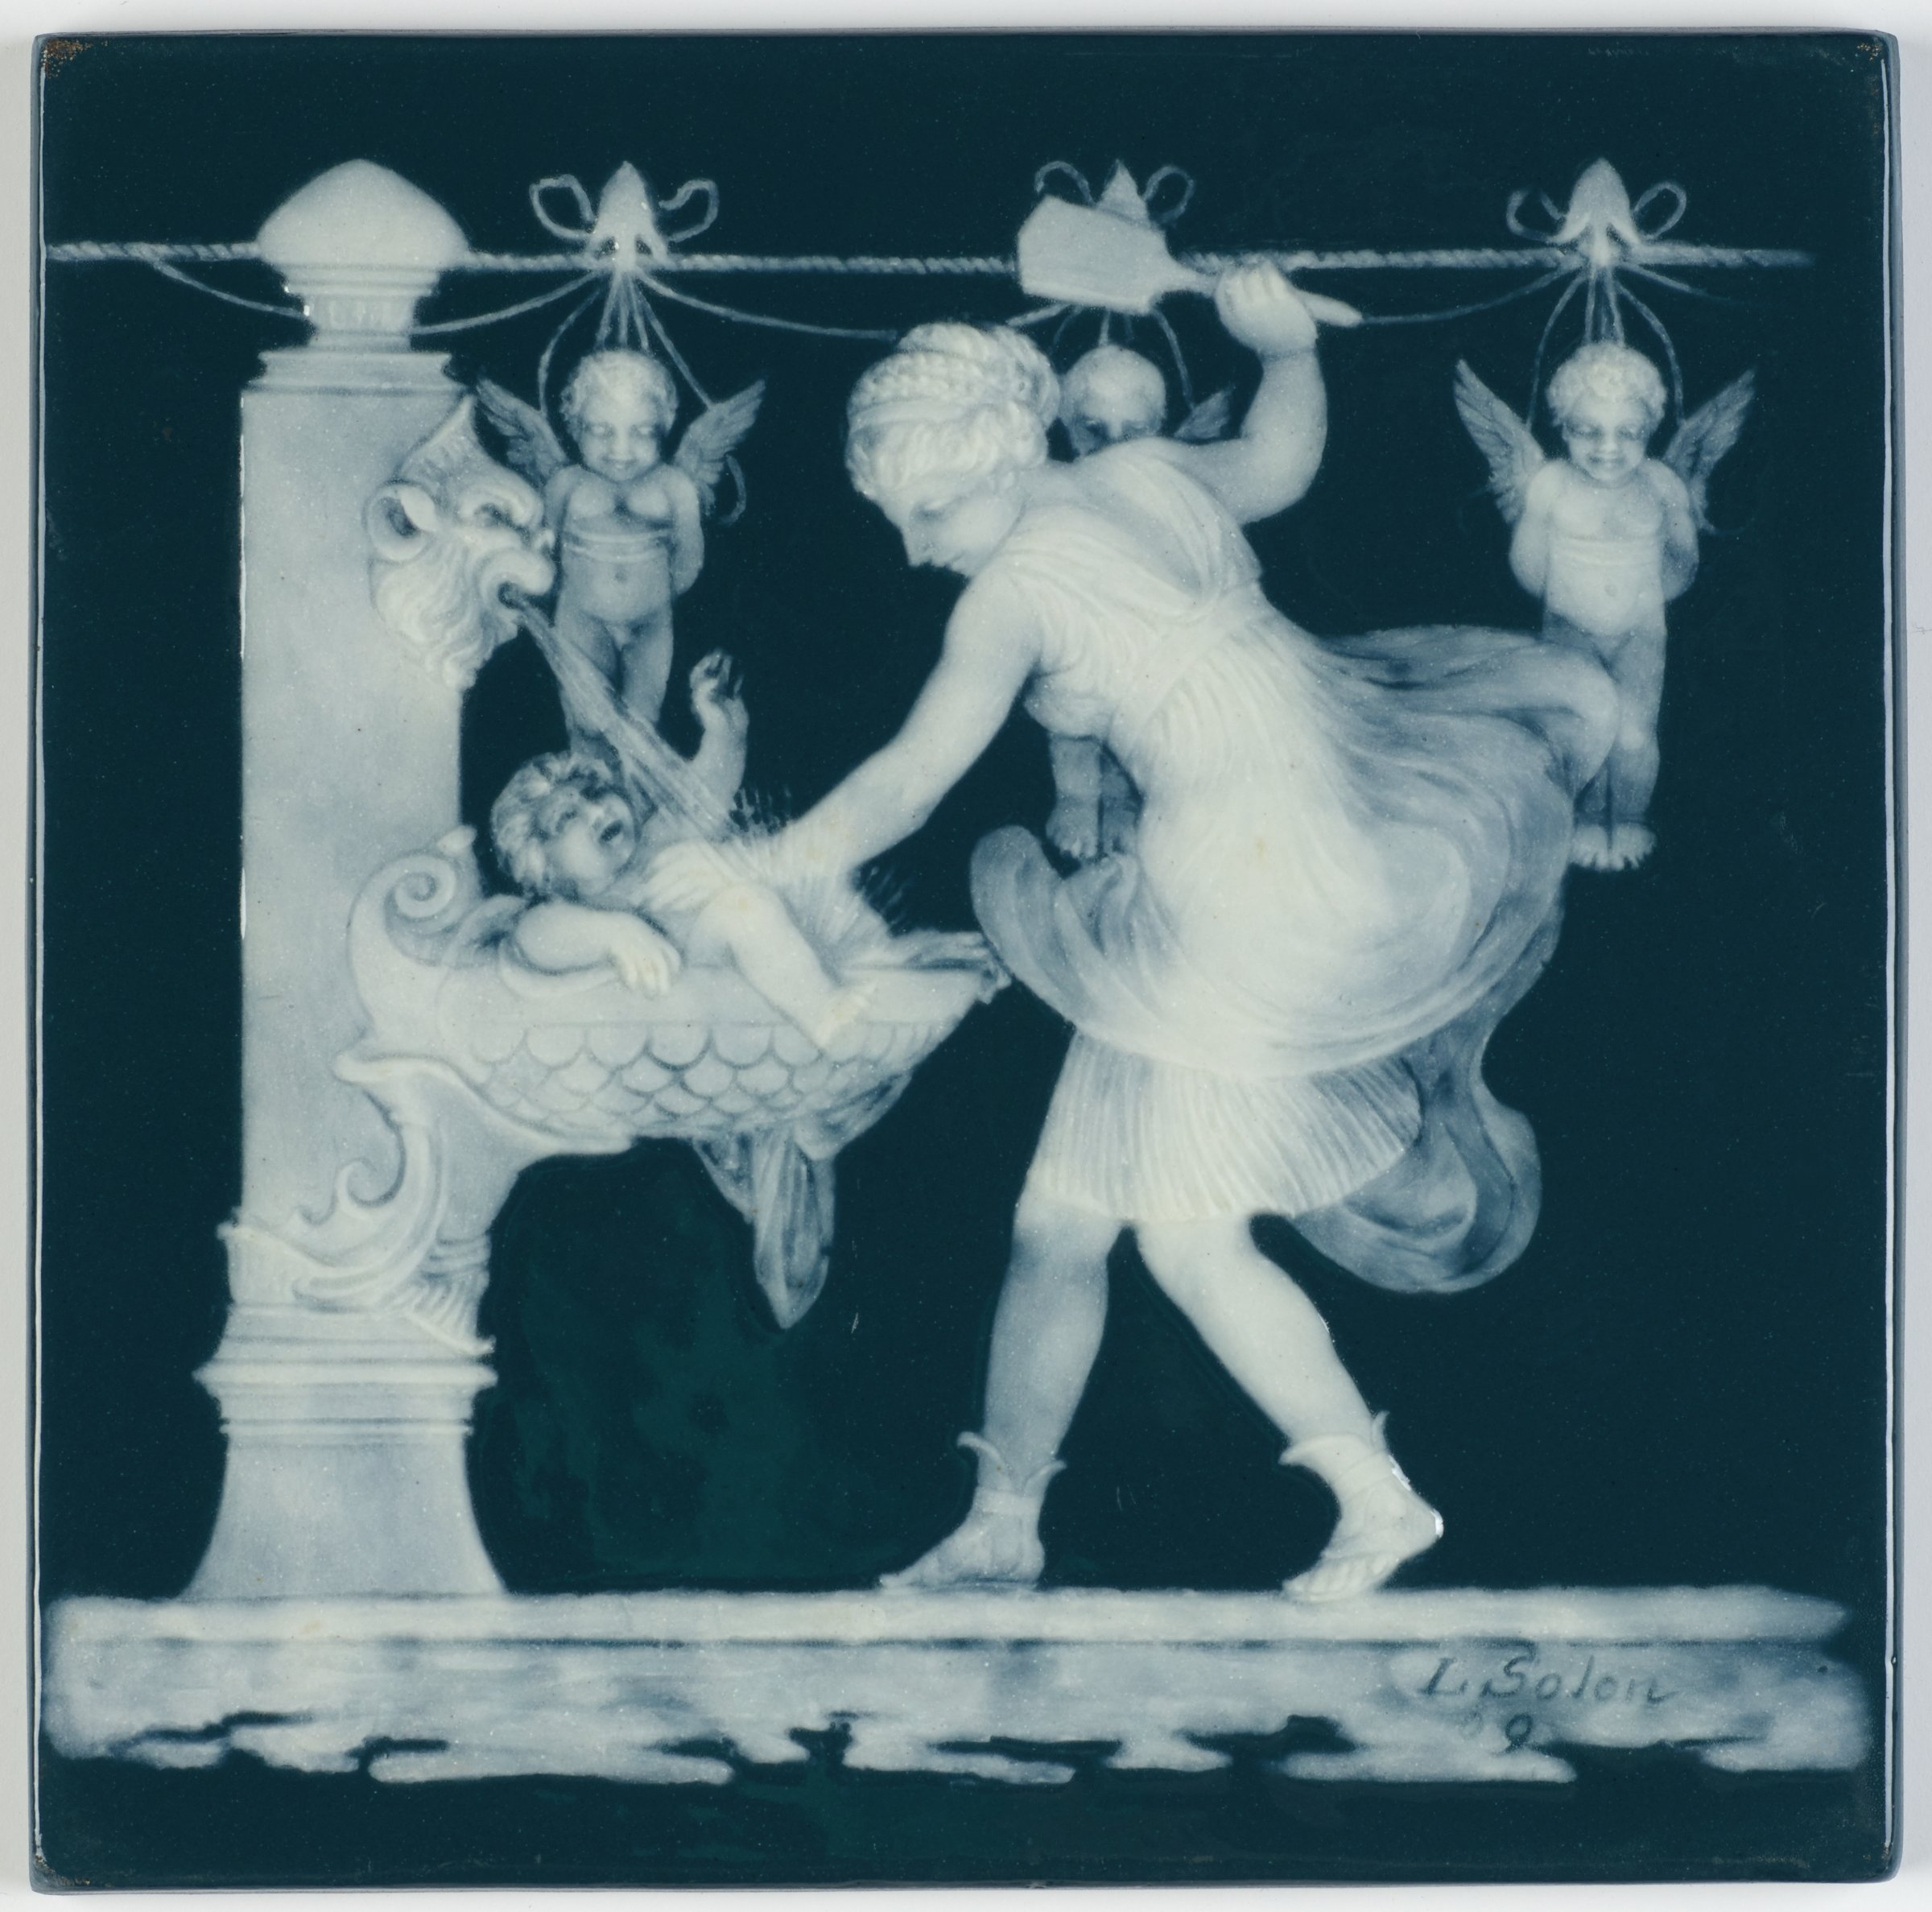 A Parian plaque, or tile, with a dark blue-green, glazed ground with white pâte-sur-pâte decoration depicting a nymph wearing a diaphanous robe, holding a protesting cherub in the scale-patterned basin of a columnar fountain with her left hand and wielding a scrubbing brush in her raised right hand, behind her are three additional cherubs suspended from a line on which they have been hung out to dry.